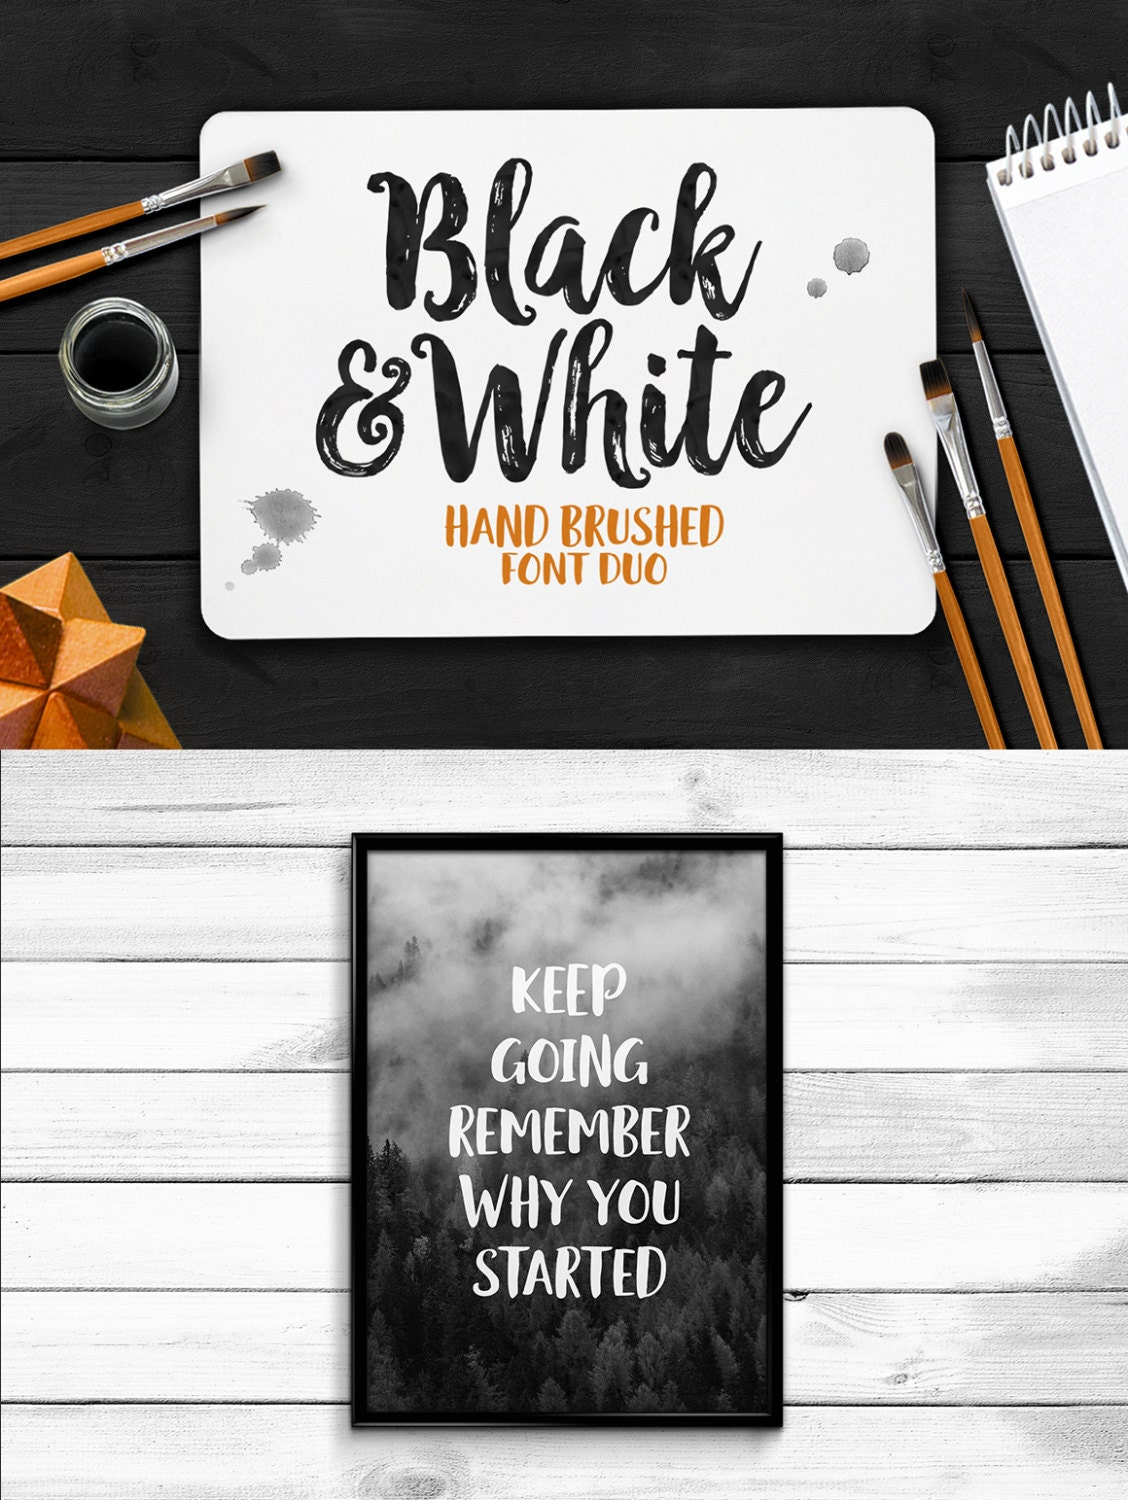 black white font duo handpainted font handbrushed font. Black Bedroom Furniture Sets. Home Design Ideas